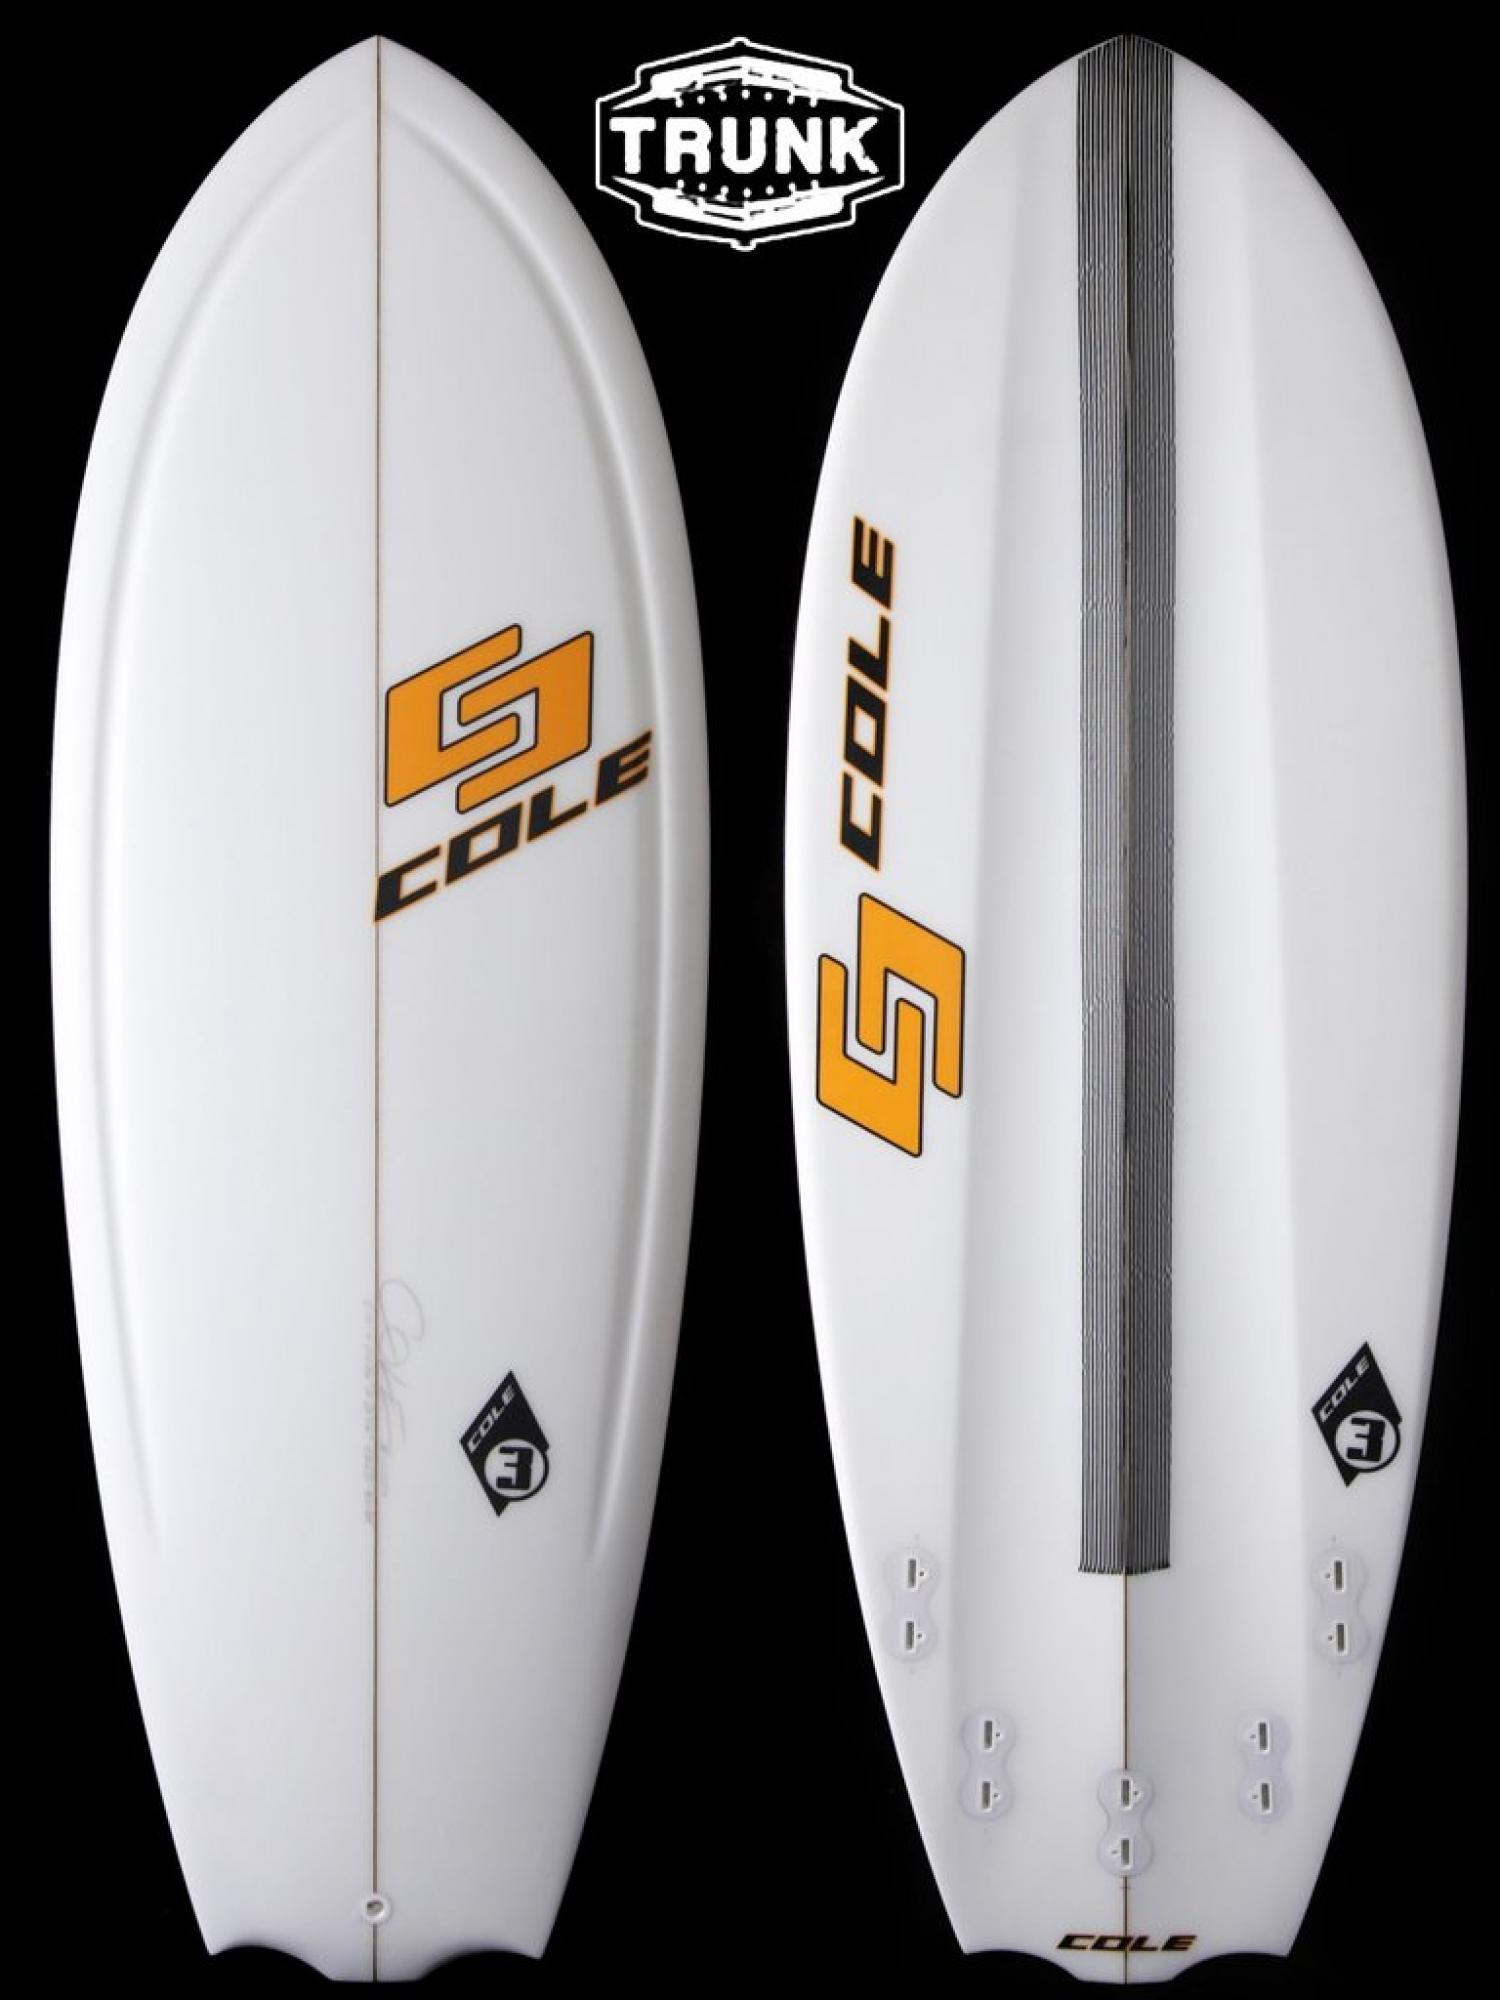 Trunk Board COLE SURFBOARDS  Order accepted